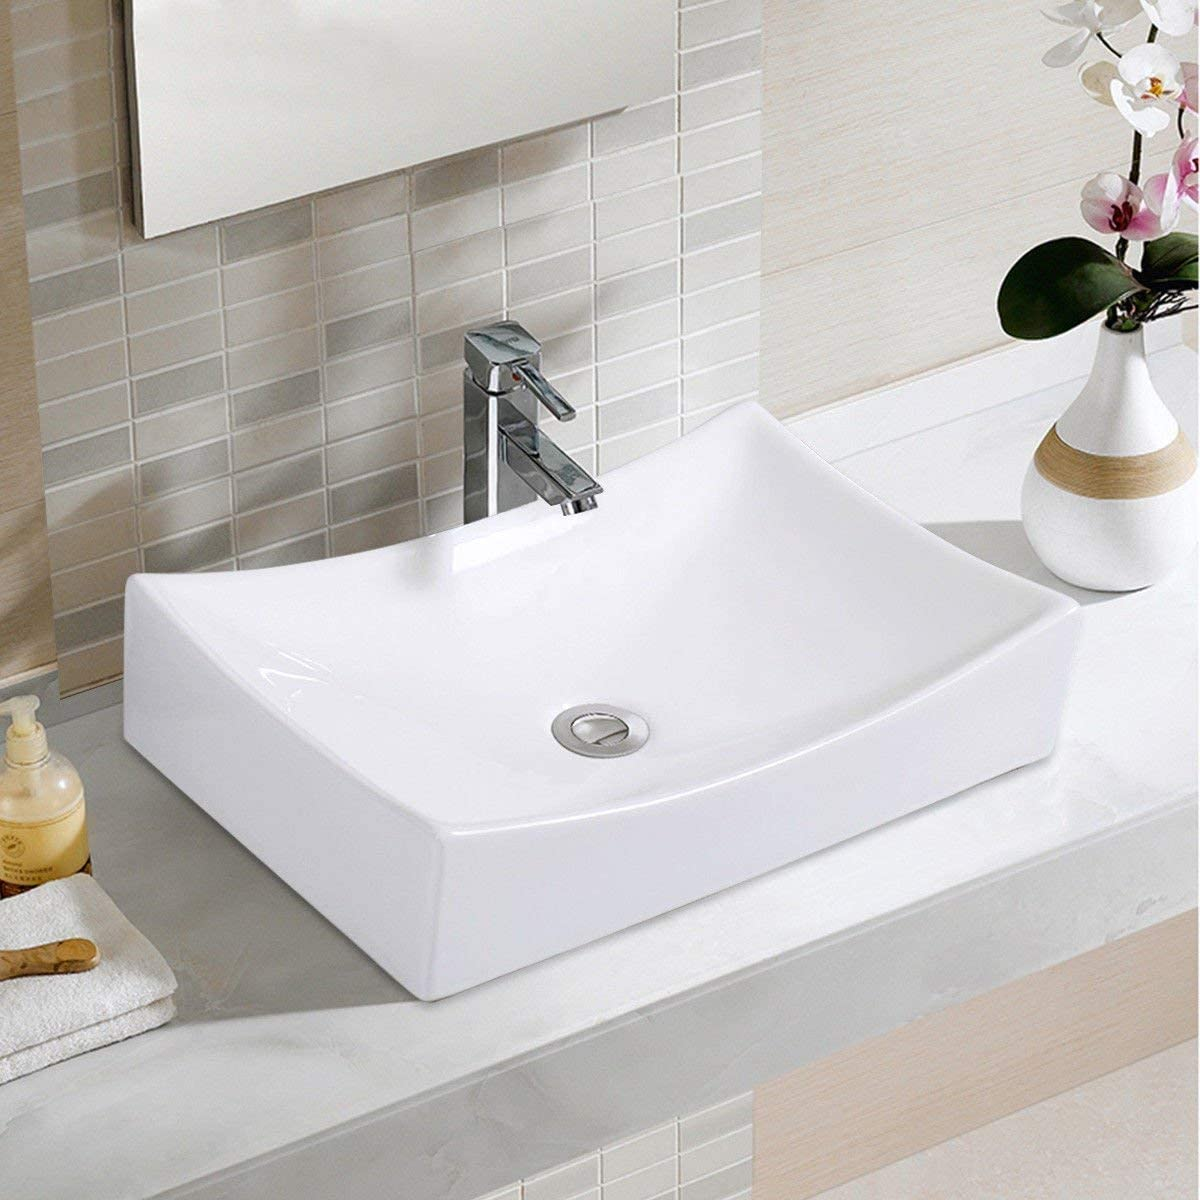 Giantex Bathroom Rhombus Ceramic Vessel Sink Vanity Pop Up Drain Modern Art Basin